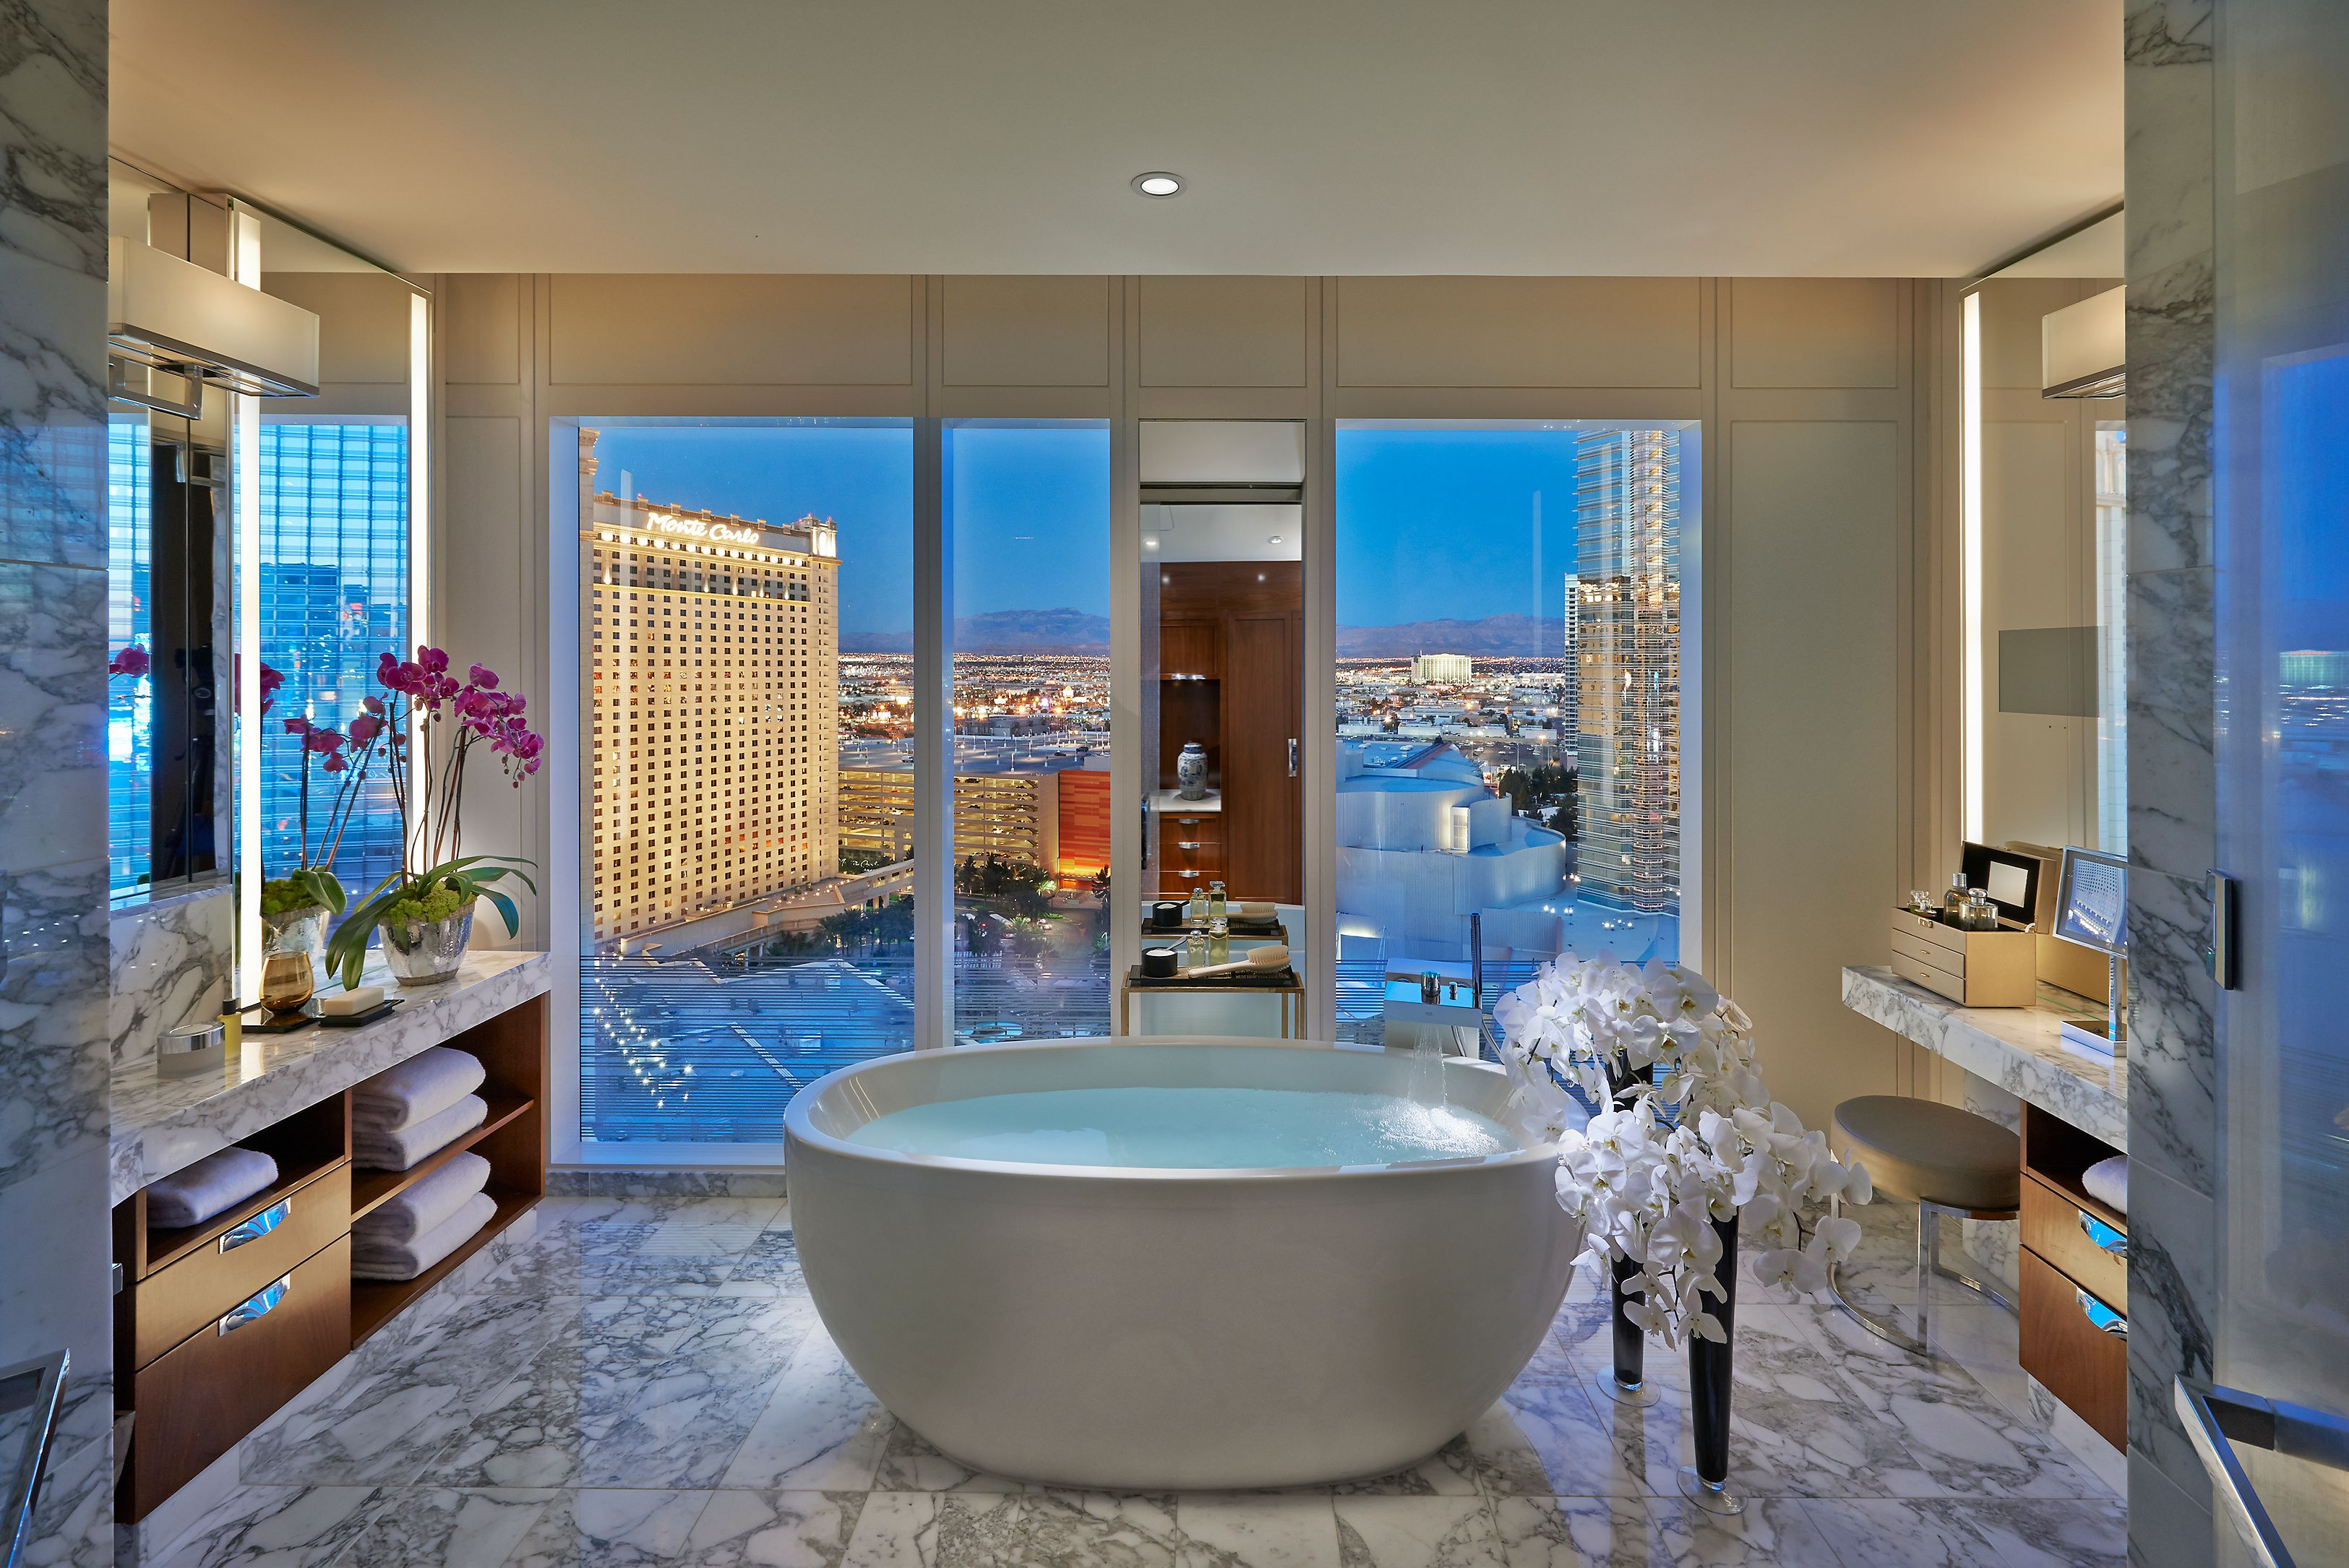 Luxury Bathrooms In Hotels mandarin hotel las vegas bathroom | mandarin oriental las vegas